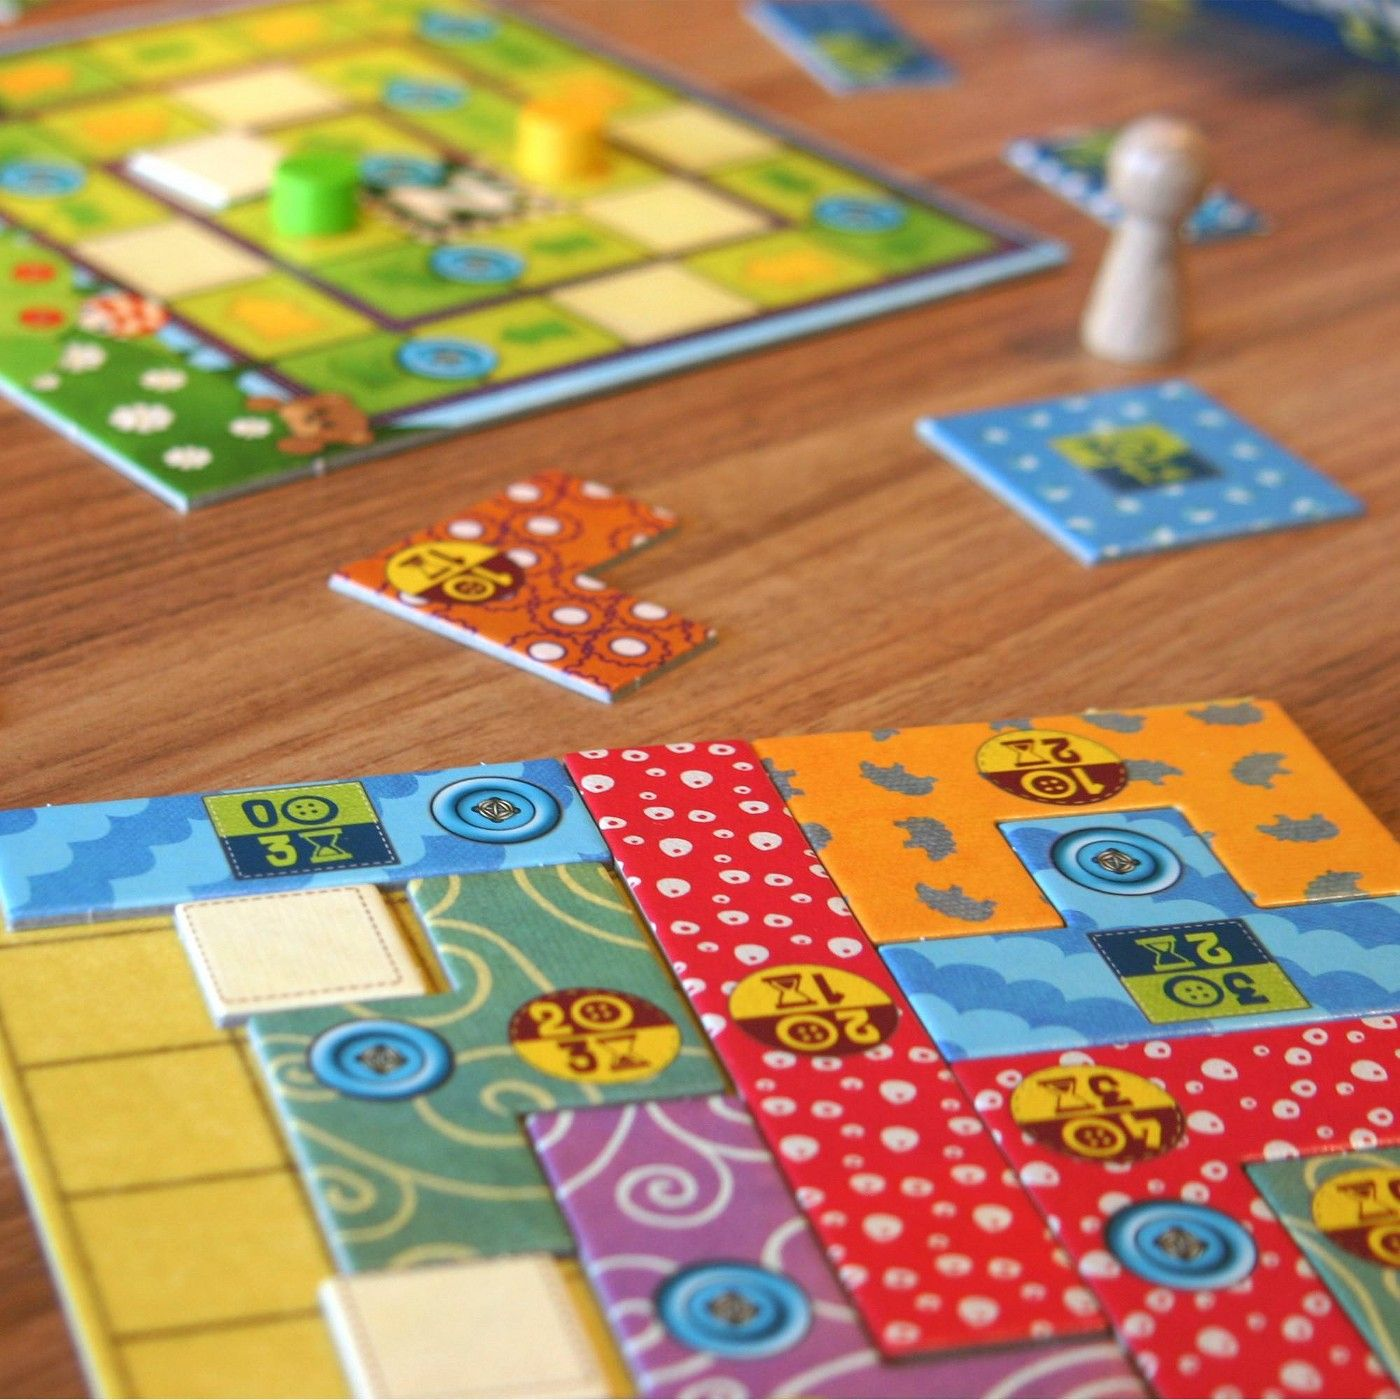 Patchwork Express Board Game in 2020 Board games, Games